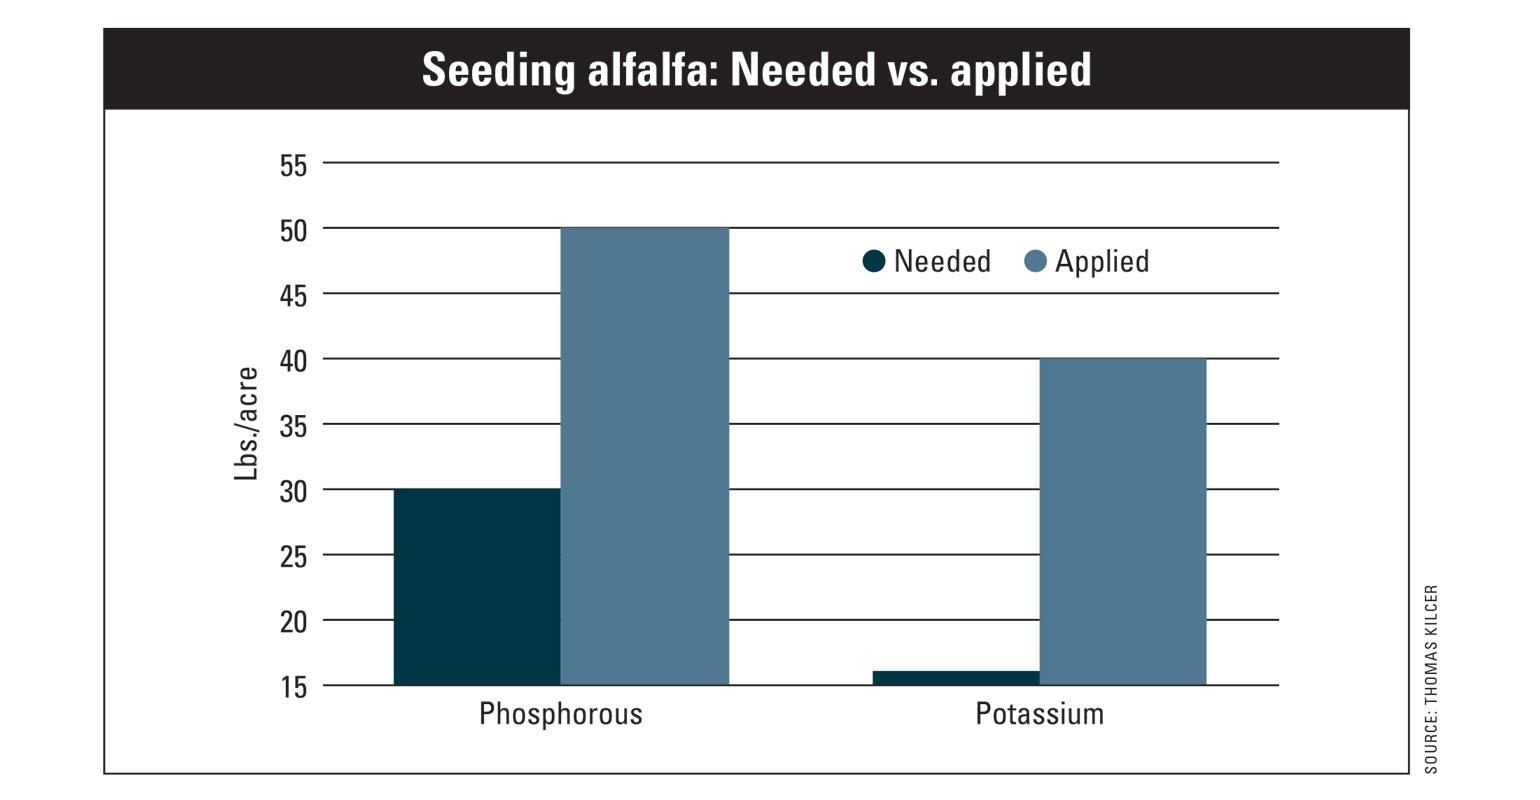 Chart shows needed vs. applied phosphorus and potassium during alfalfa seeding